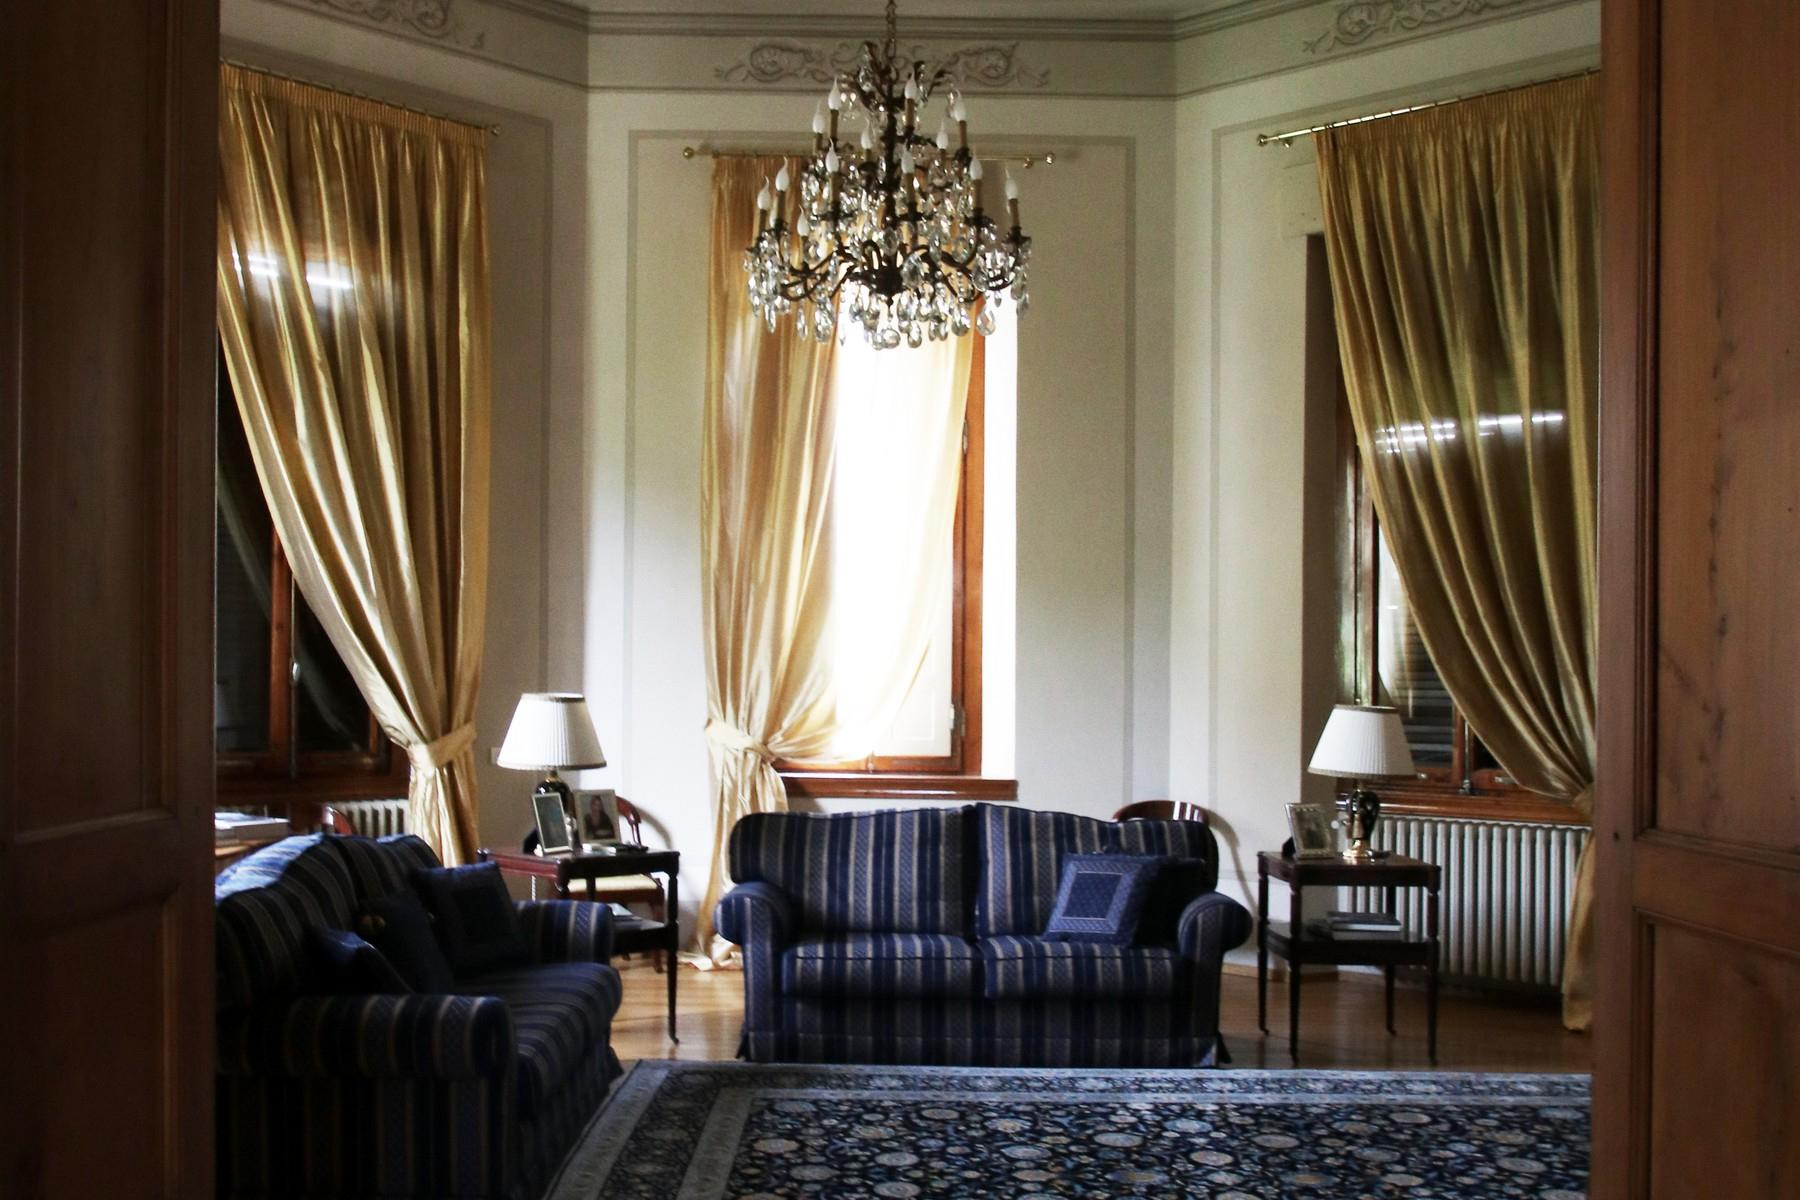 Flamboyant Top-floor Apartment with Tower in Bellosguardo, Florence - 5